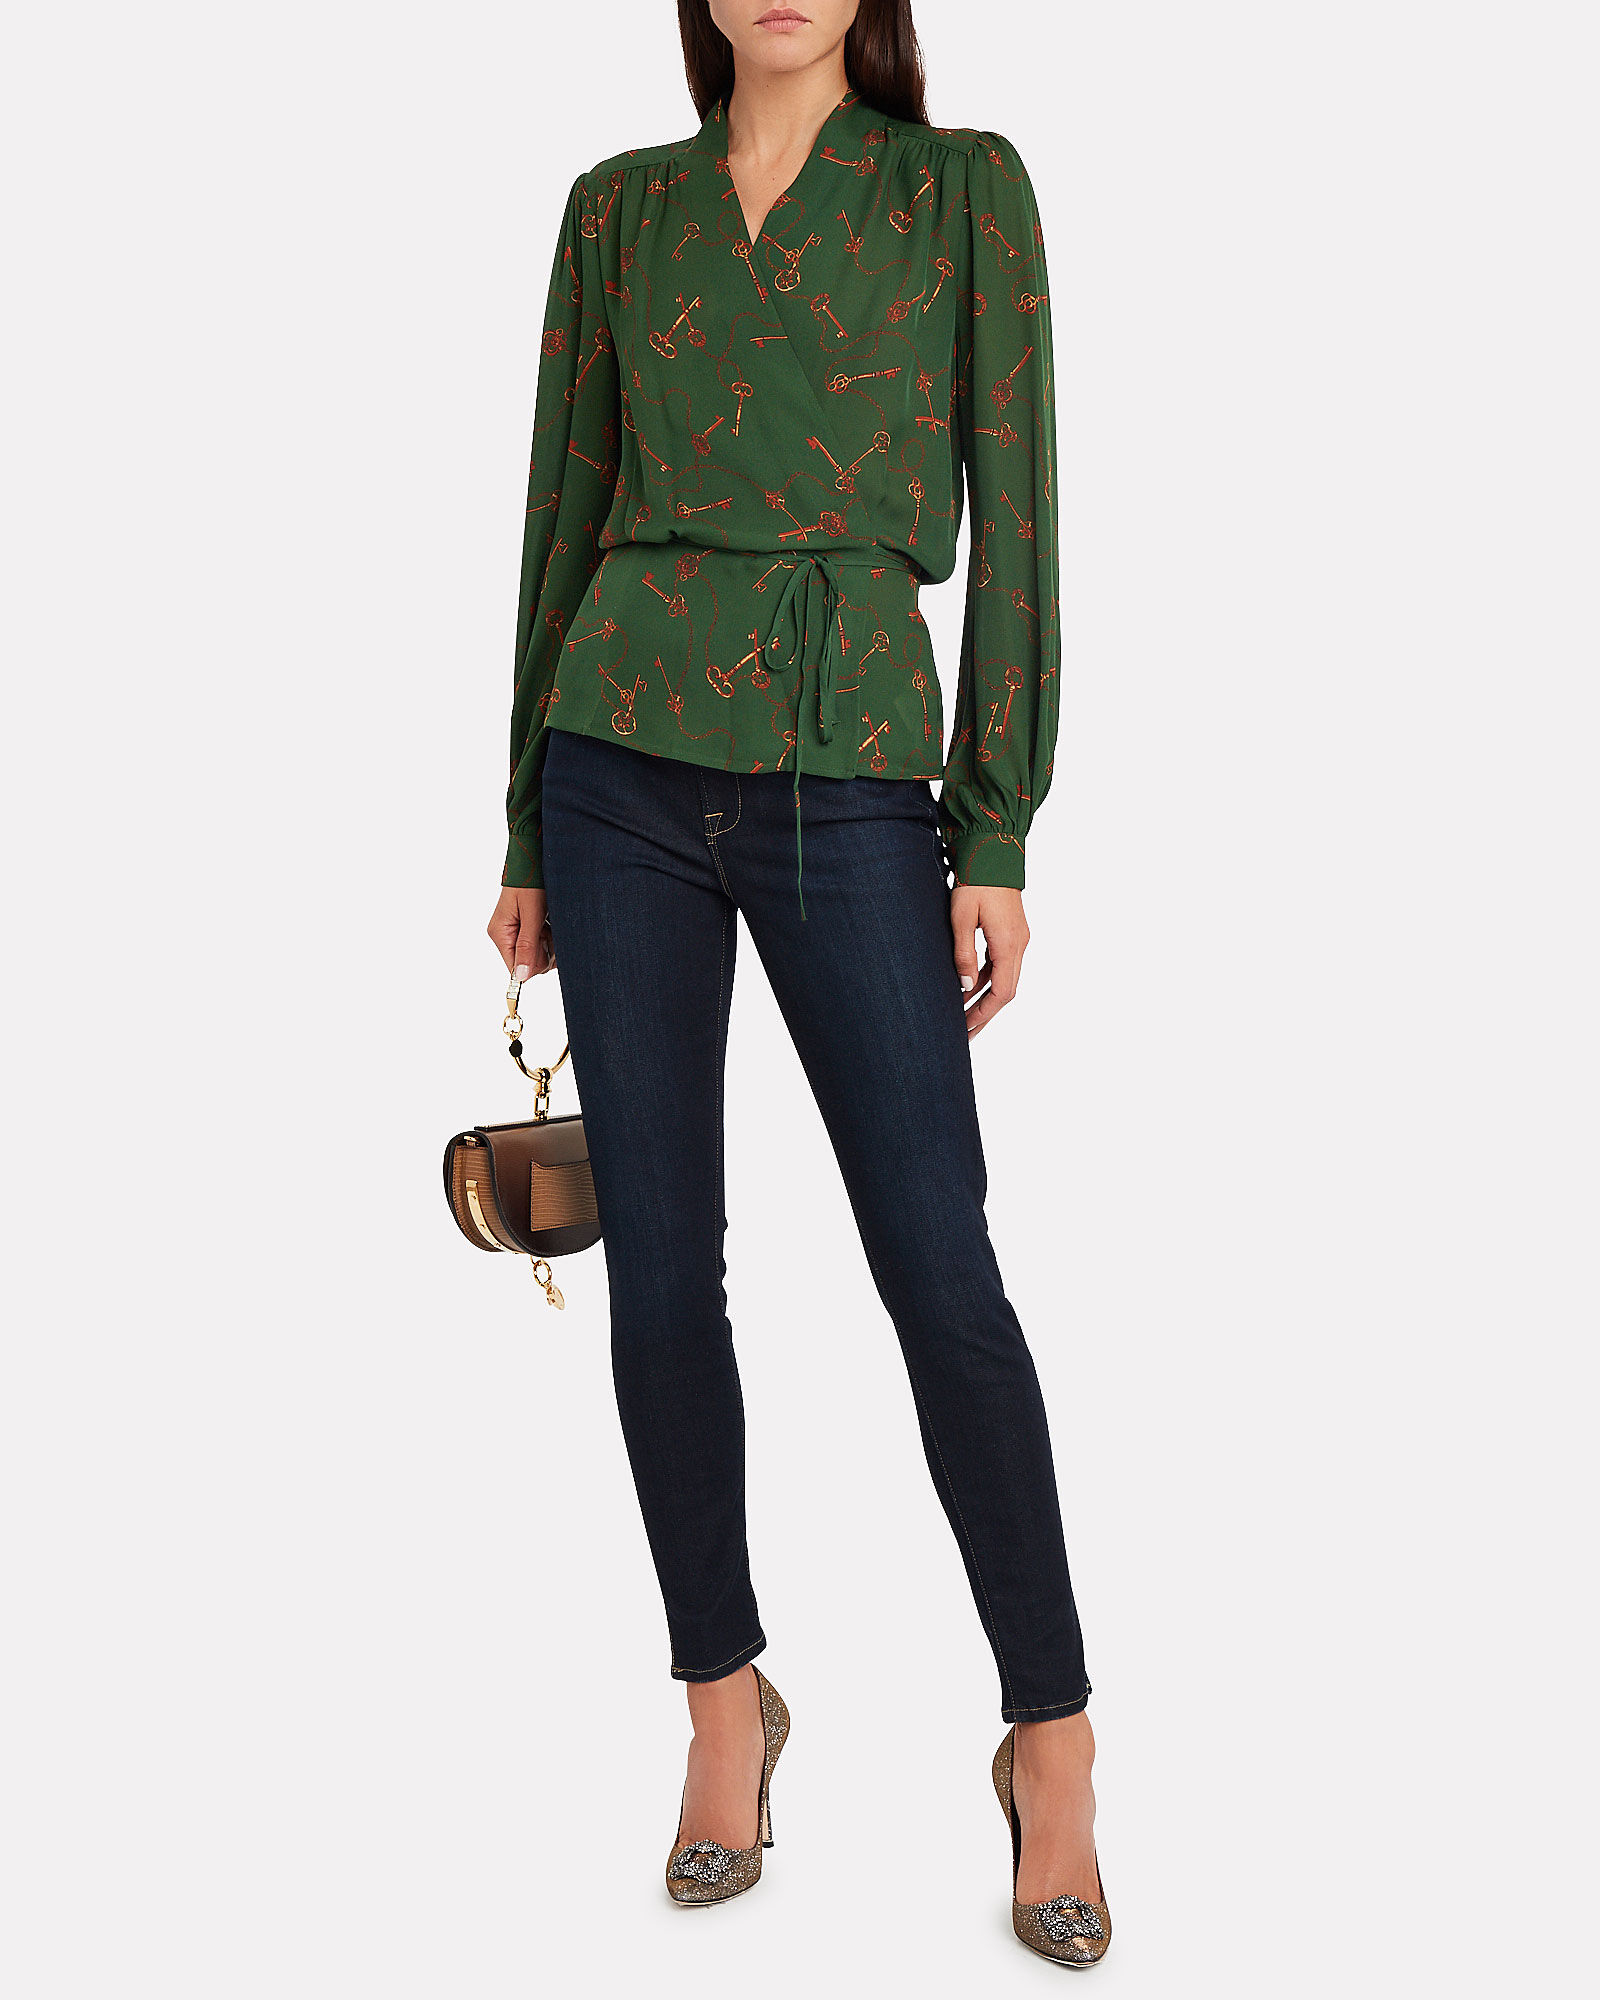 Cara Georgette Wrap Blouse, FOREST GREEN, hi-res